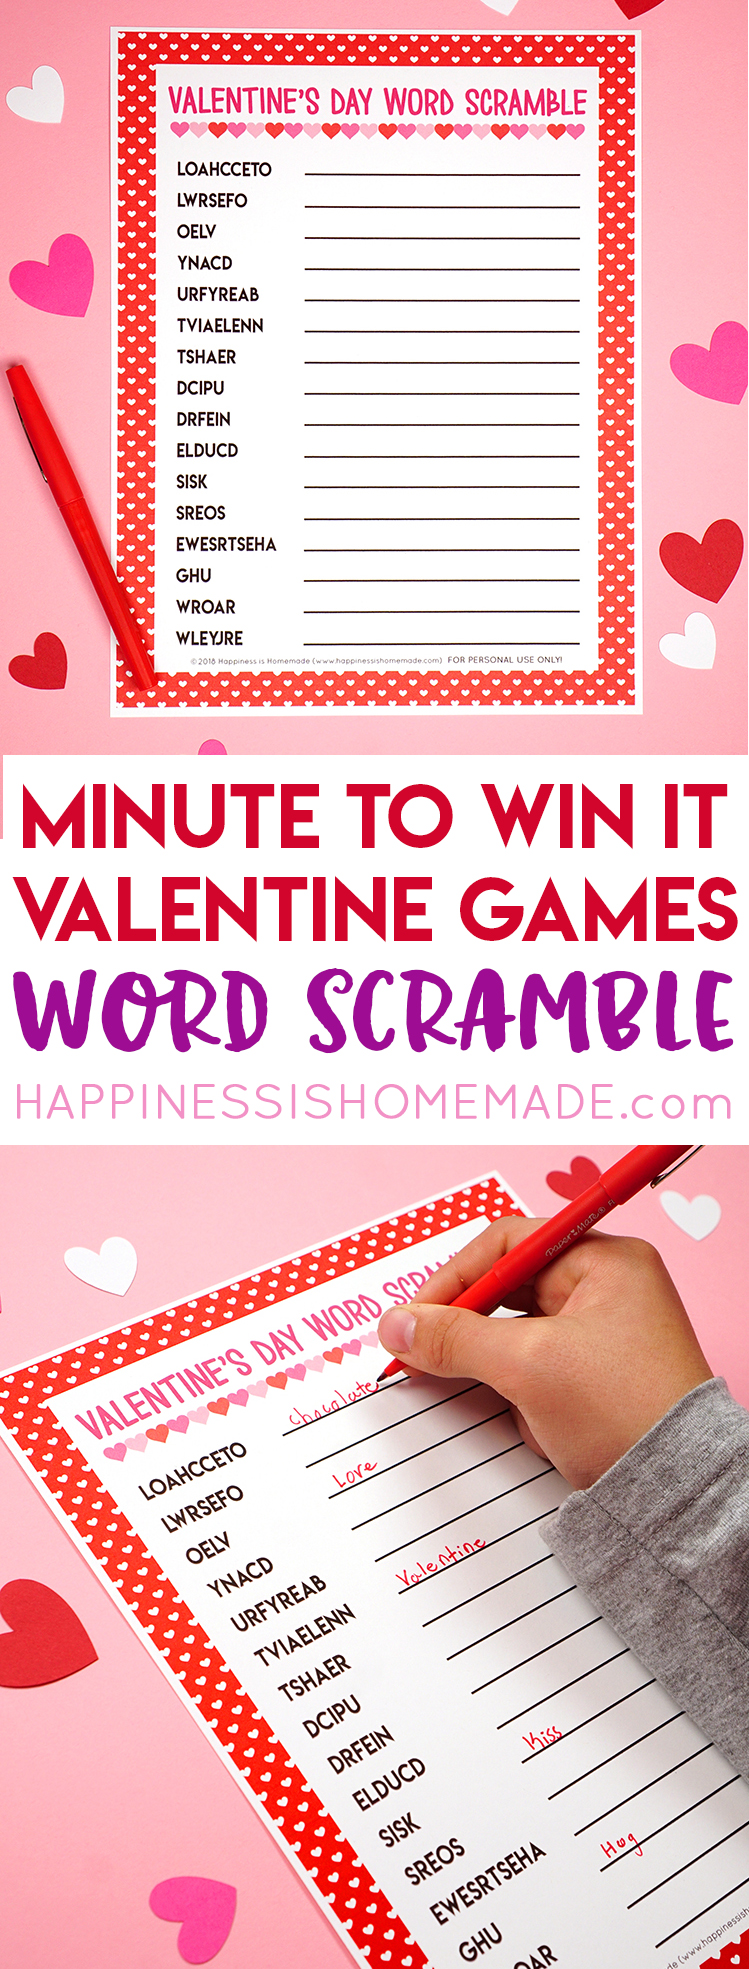 Valentine Minute To Win It Games Happiness Is Homemade